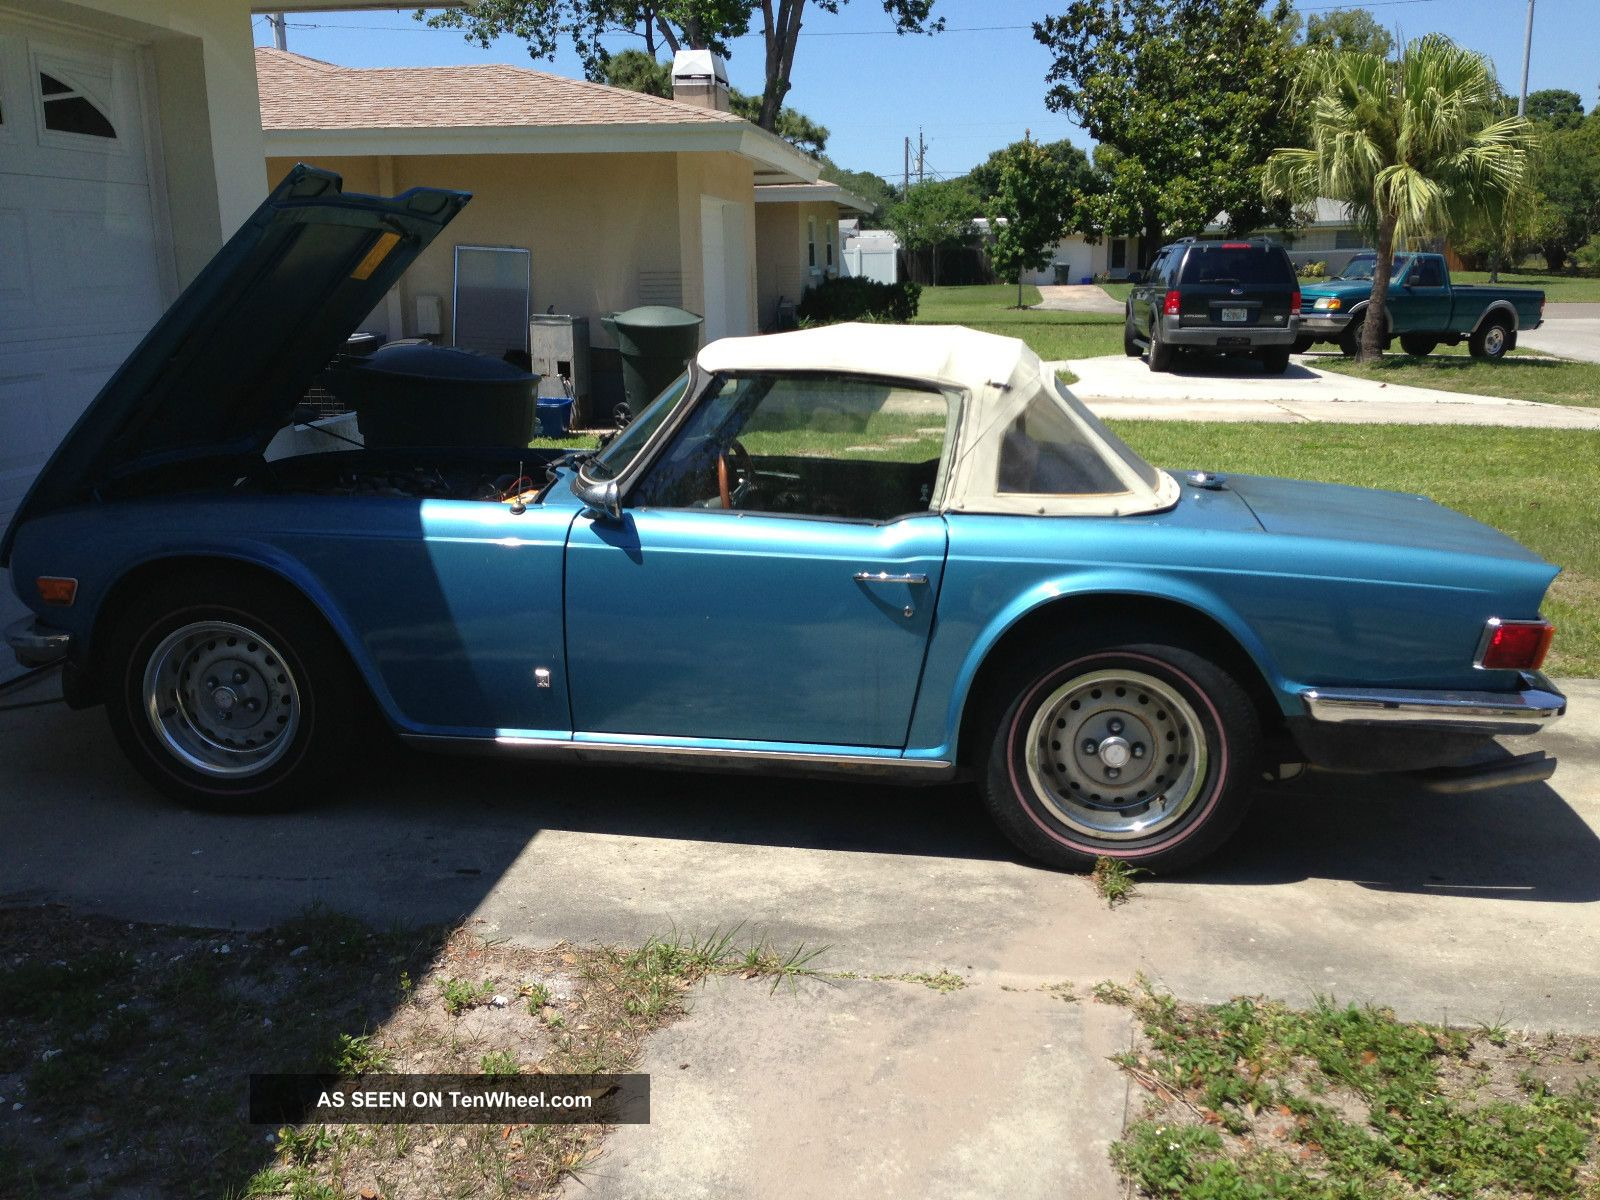 1976 Triumph Tr6 Factory Air,  96k TR-6 photo